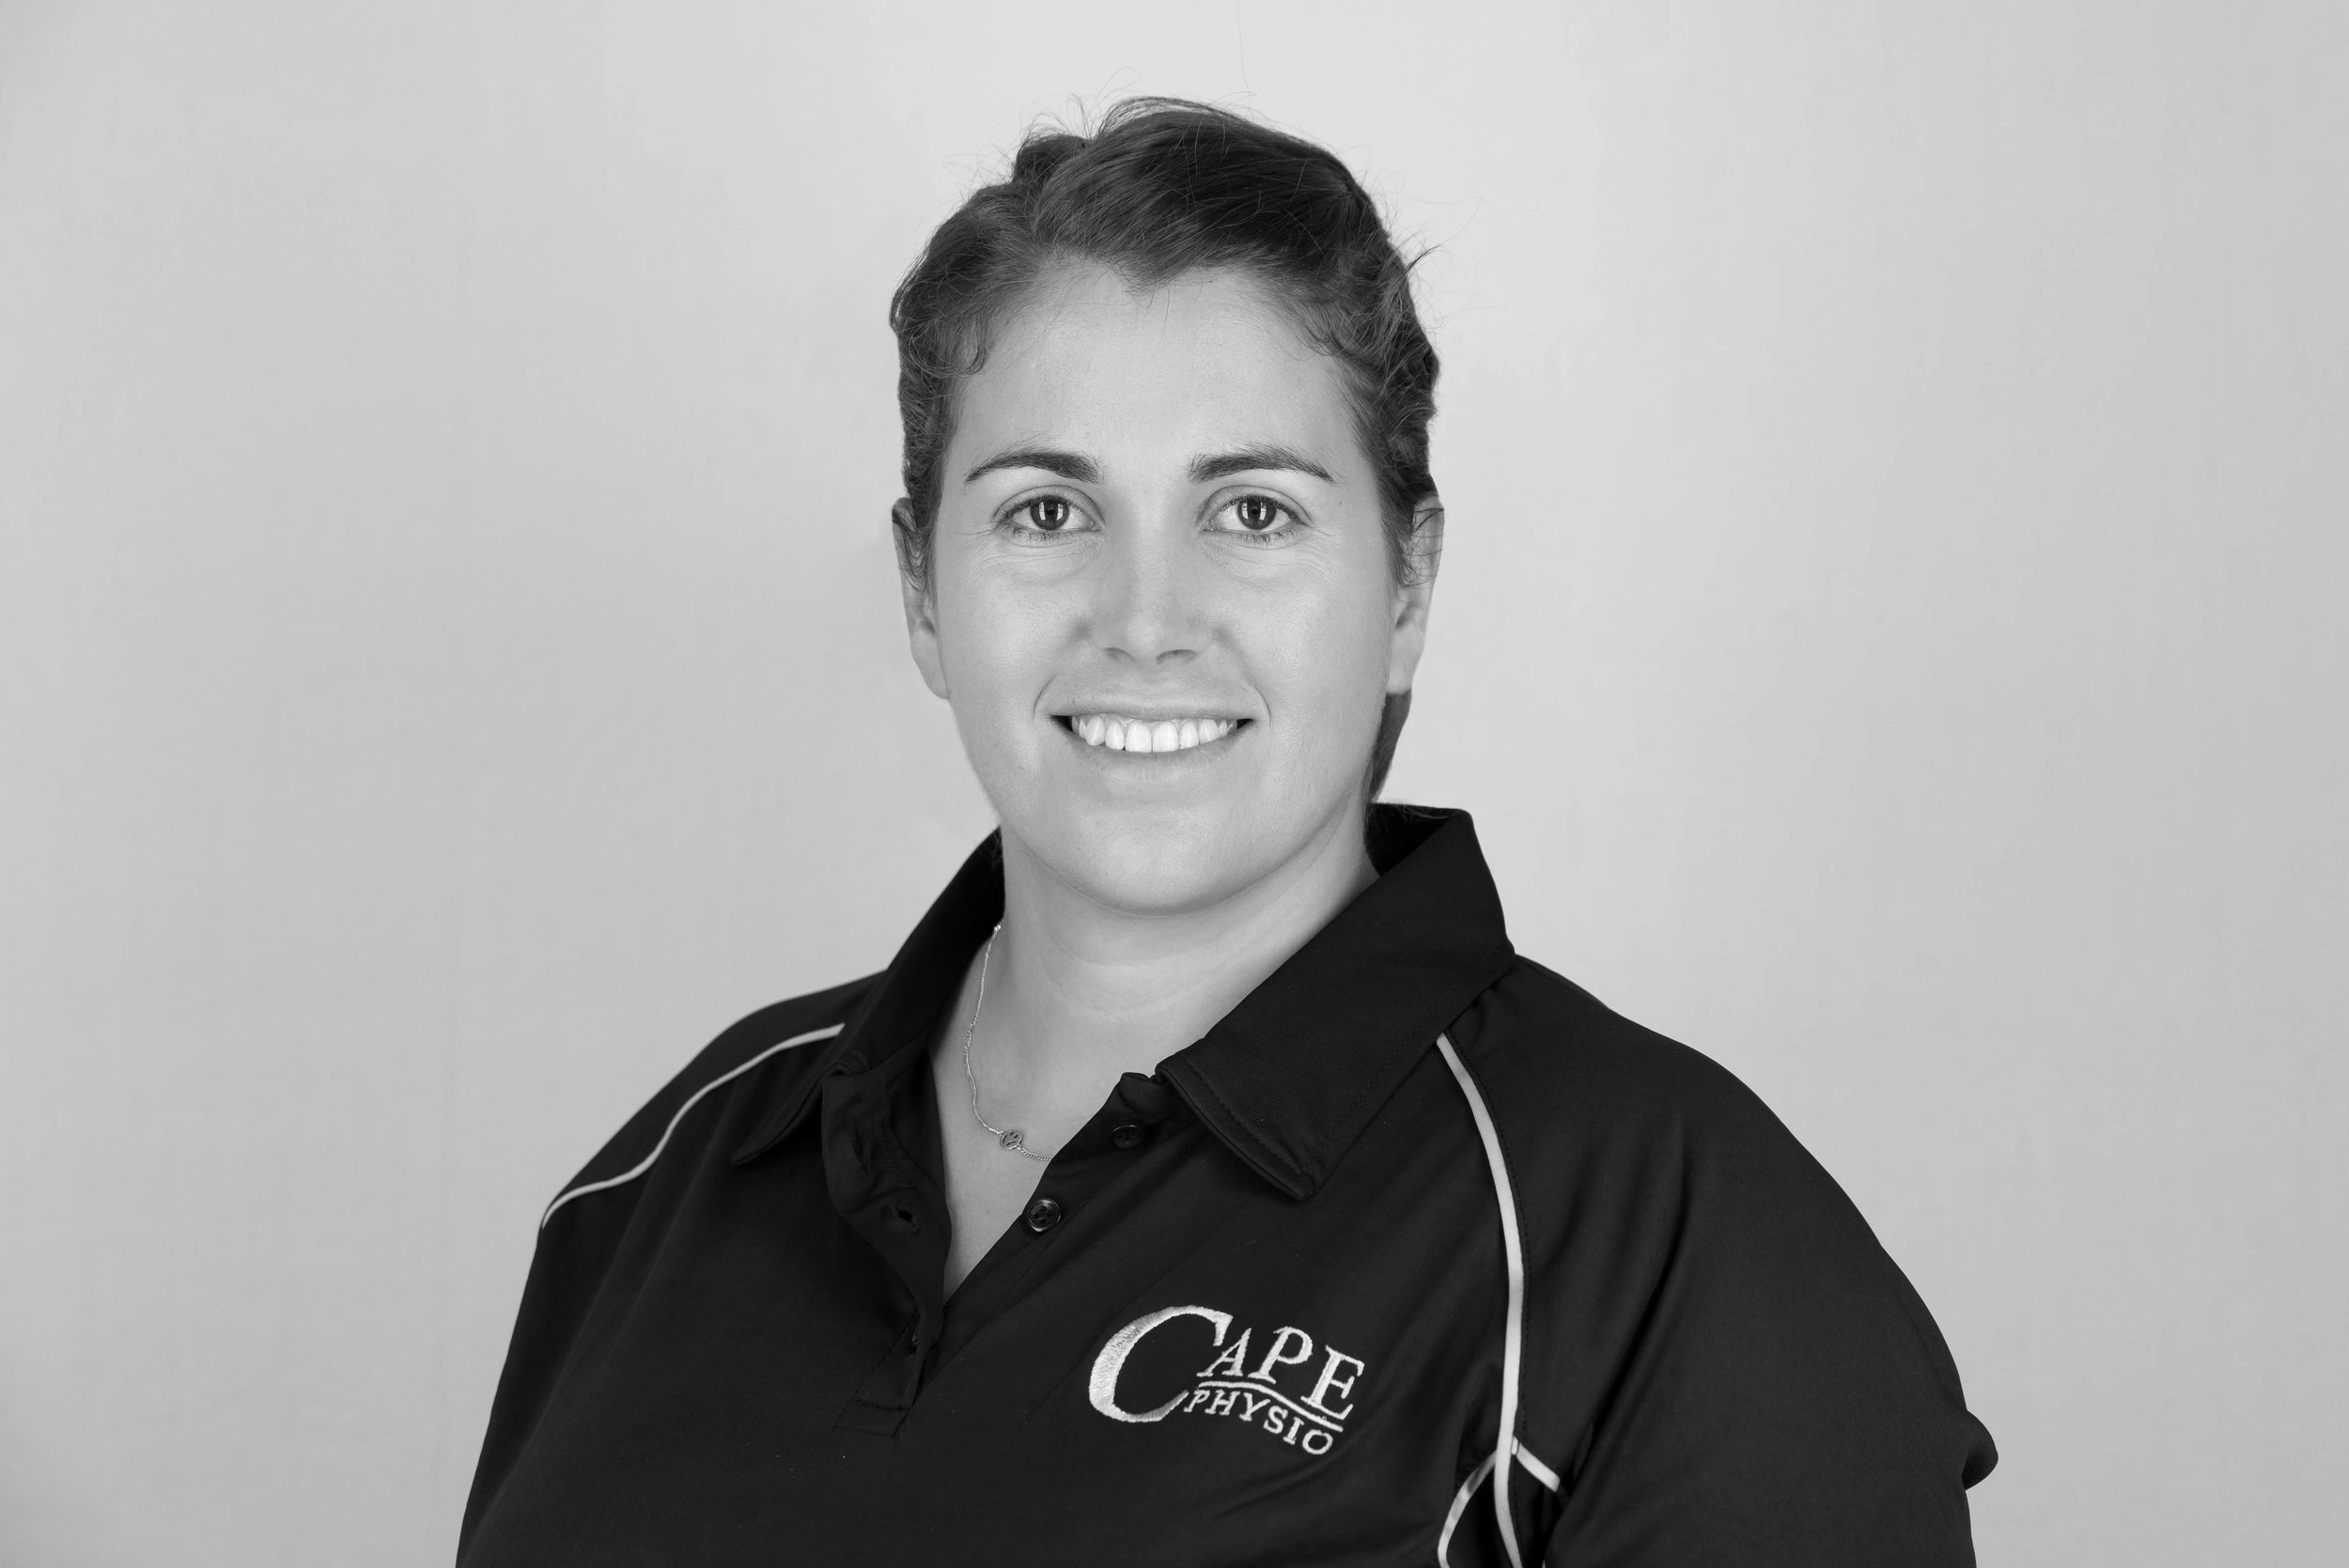 Candace Wheatley - Senior Physiotherapist   Senior Physiotherapist and Managing Director  Candace graduated from Otago University in 2012, then went on to further study through Otago to graduate with a Masters of Physiotherapy endorsed with Sports Physiotherapy. She is trained to teach Polestar Mat Pilates and dry needling. Candace is the rugby coordinator and HR for CAPE.